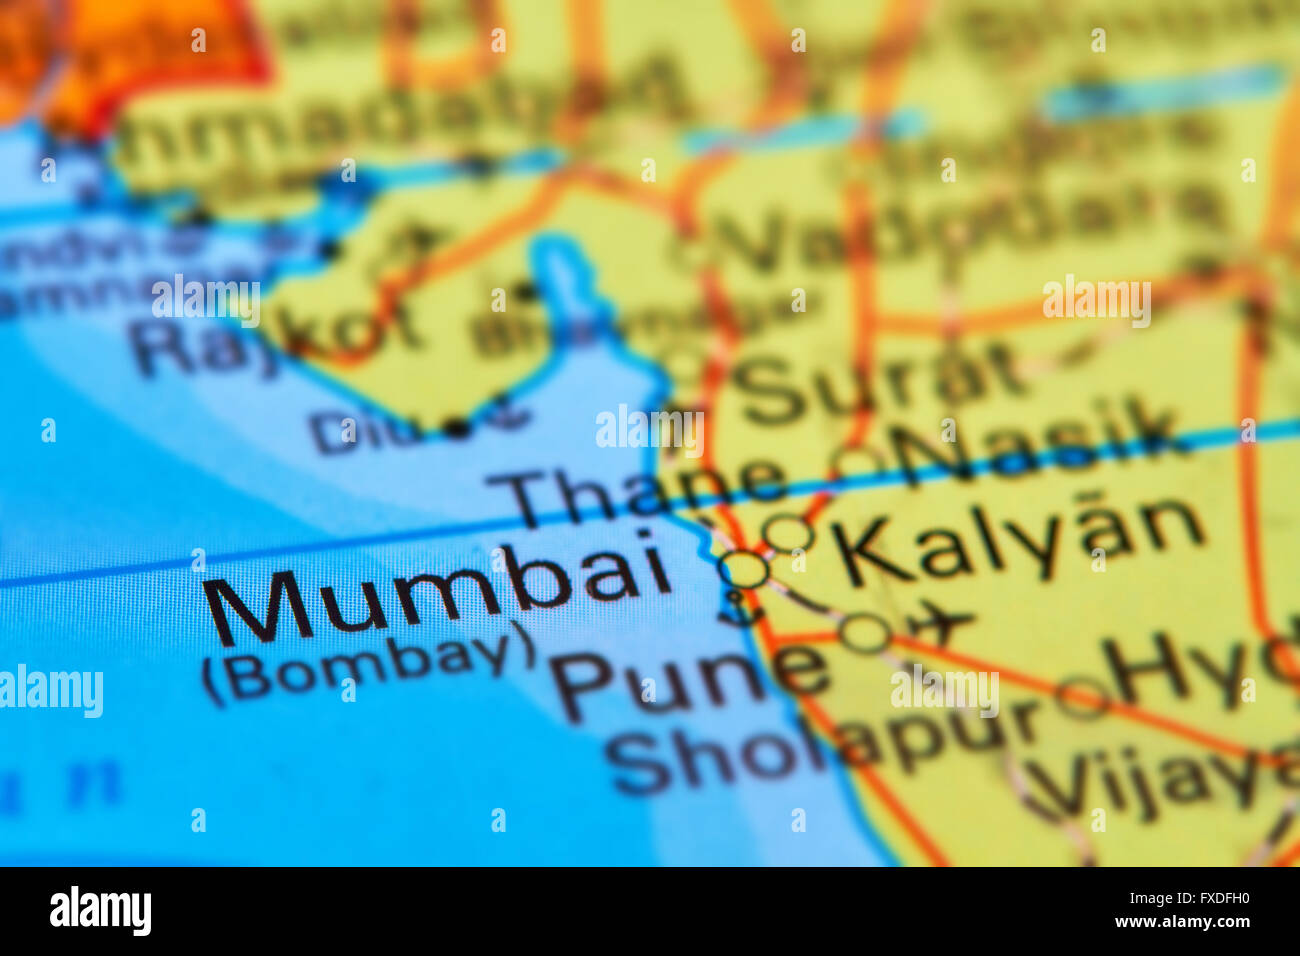 Mumbai bombay city in india asia on the world map stock photo mumbai bombay city in india asia on the world map gumiabroncs Gallery